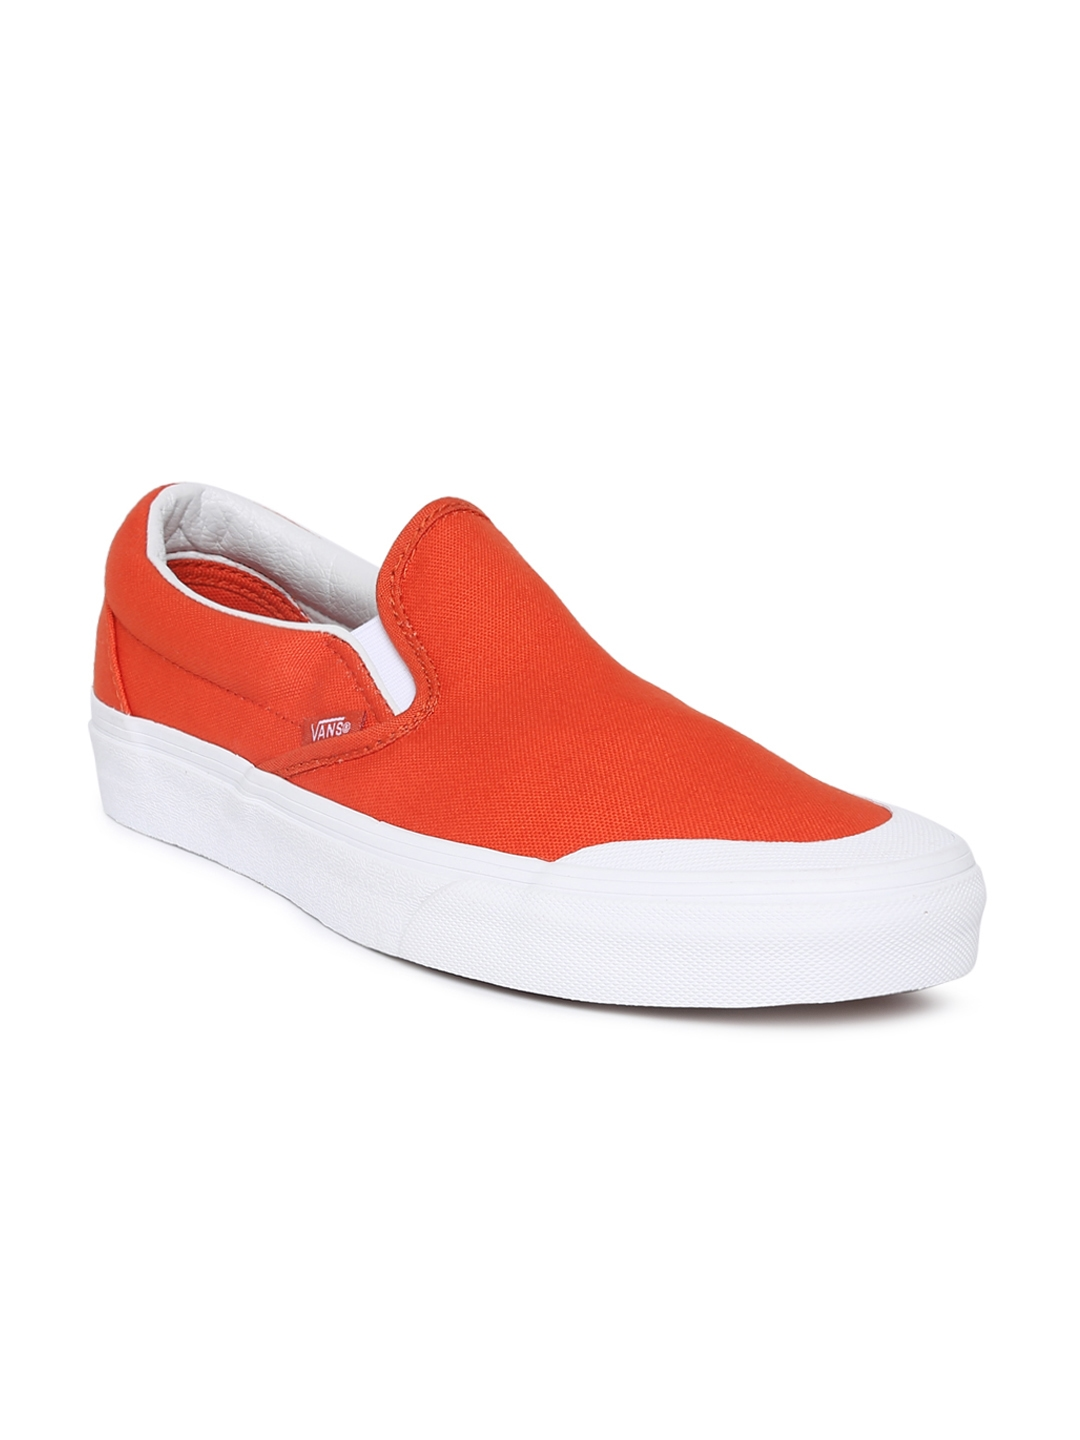 0bb3a69b4a Buy Vans Unisex Orange Classic 138 Slip On Sneakers - Casual Shoes ...